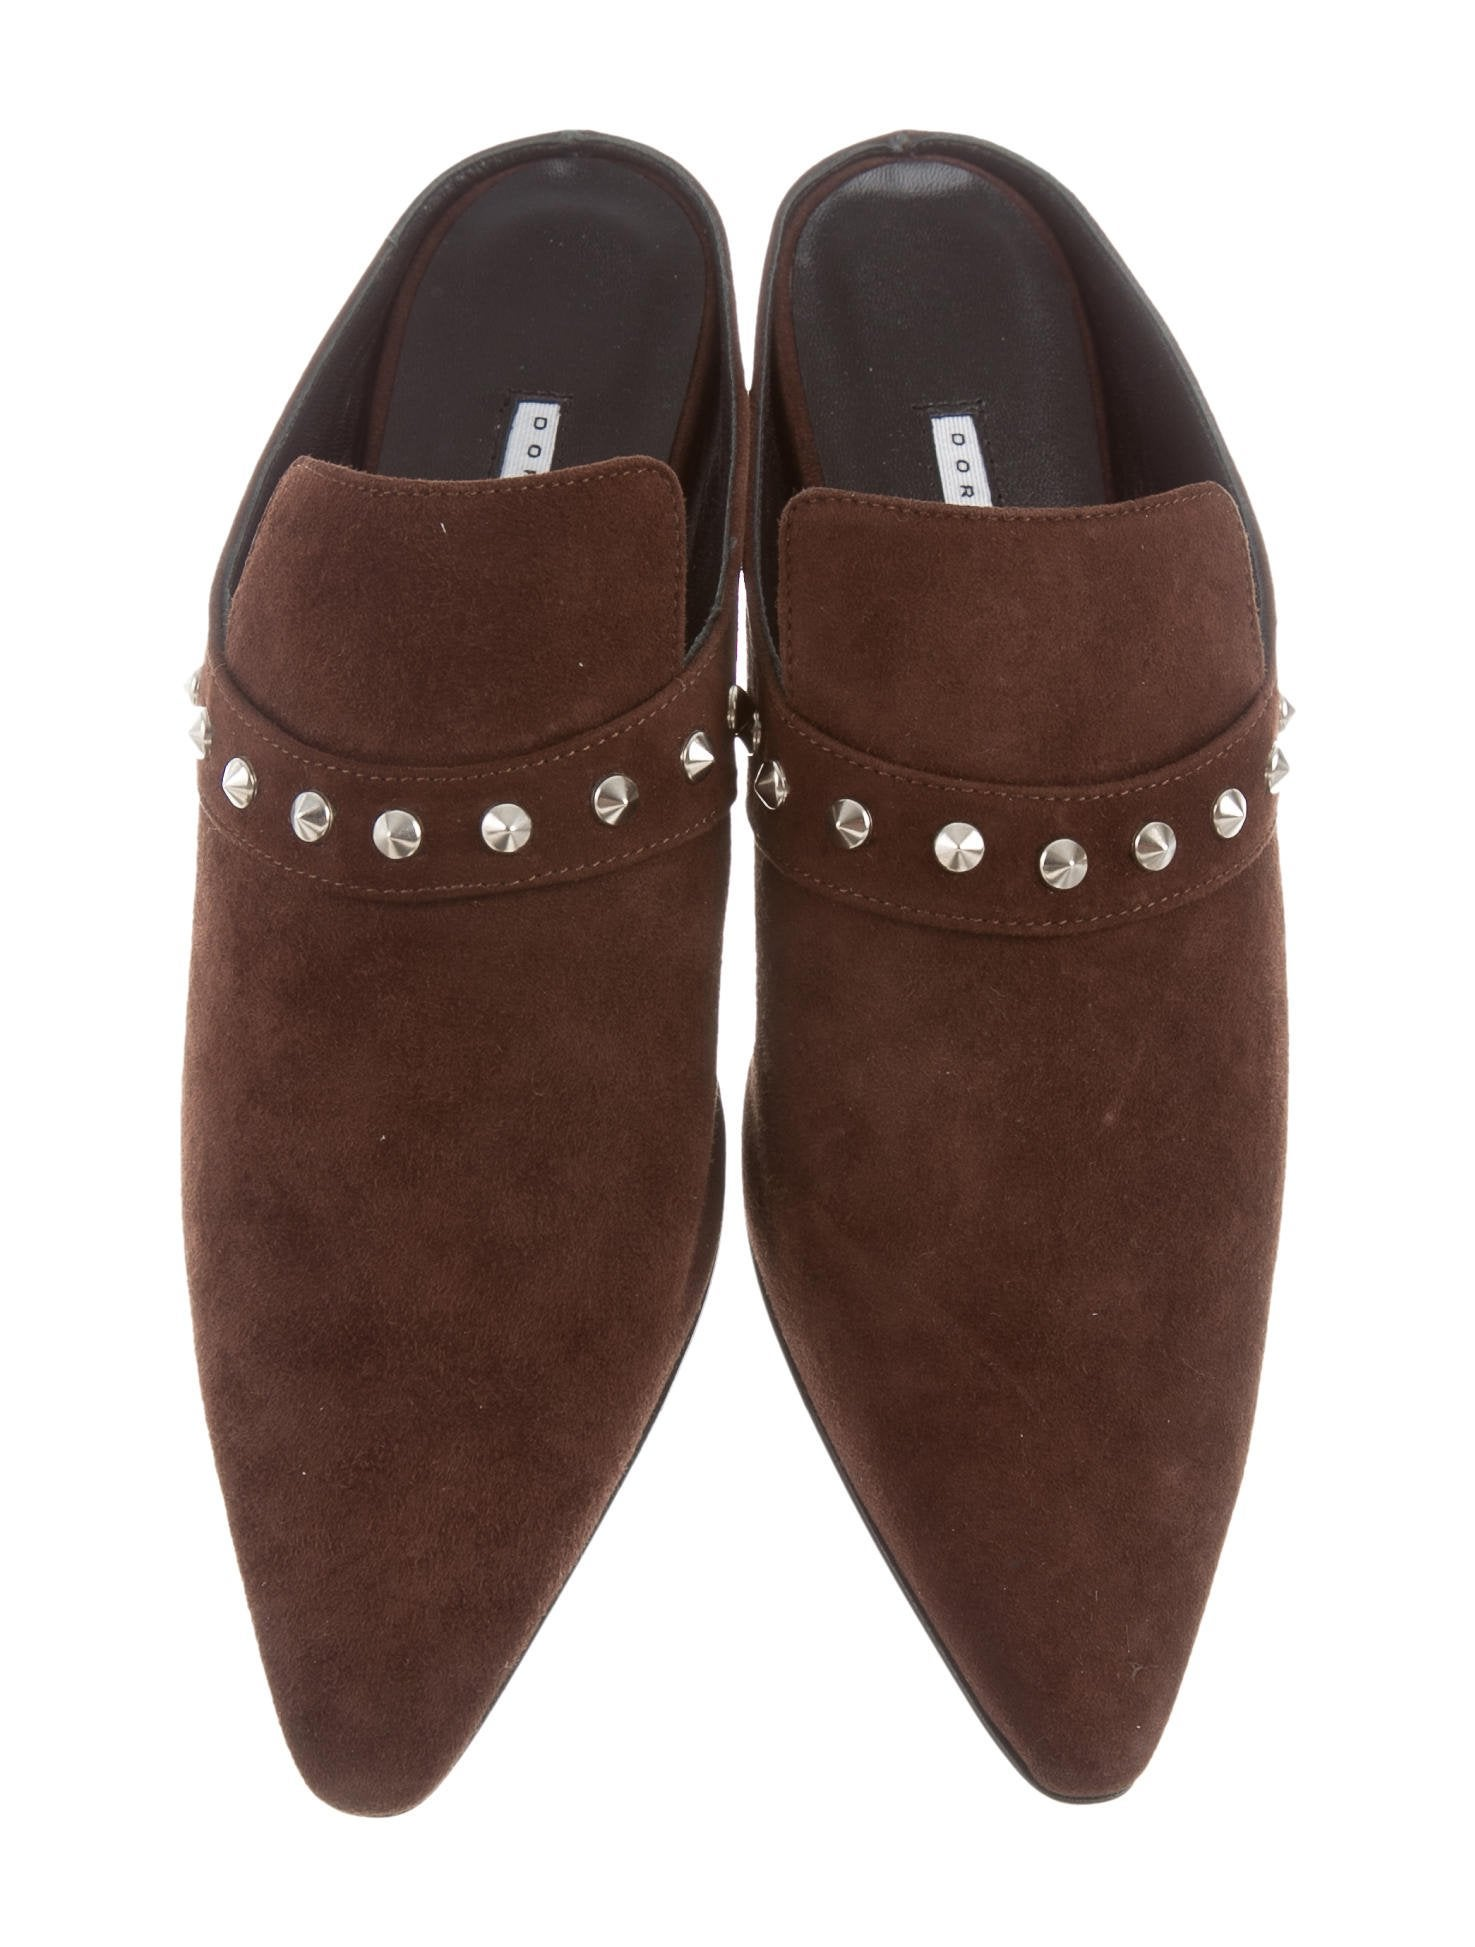 view cheap price Dorateymur Suede Spiked Mules w/ Tags free shipping for nice outlet purchase e8bIRW